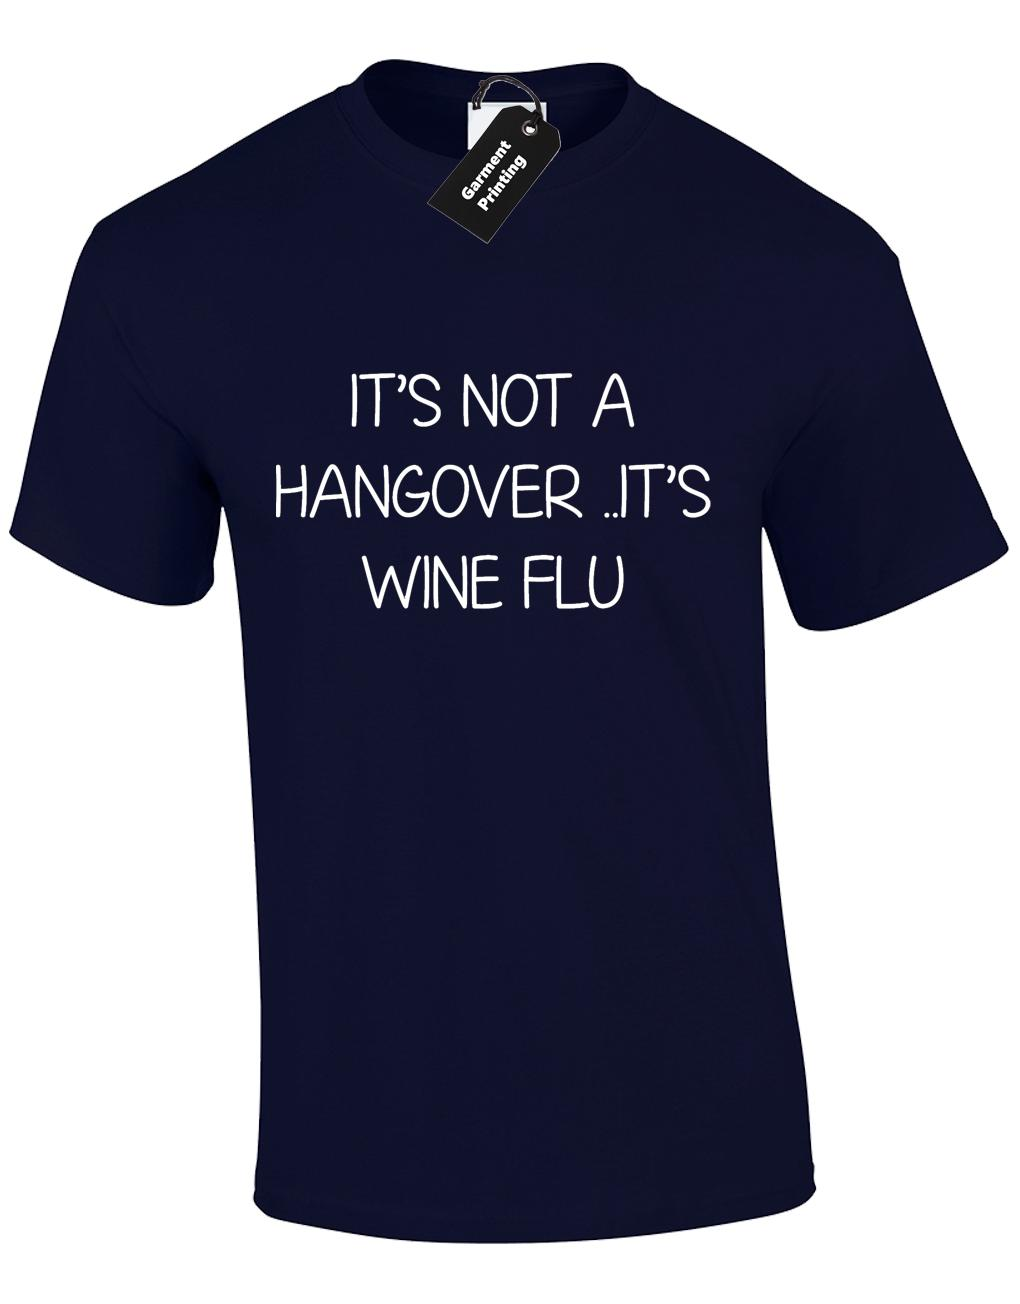 ITS NOT A HANGOVER ITS WINE FLU LADIES T SHIRT  FUNNY DRUNK DRINK HEN PARTY TOP